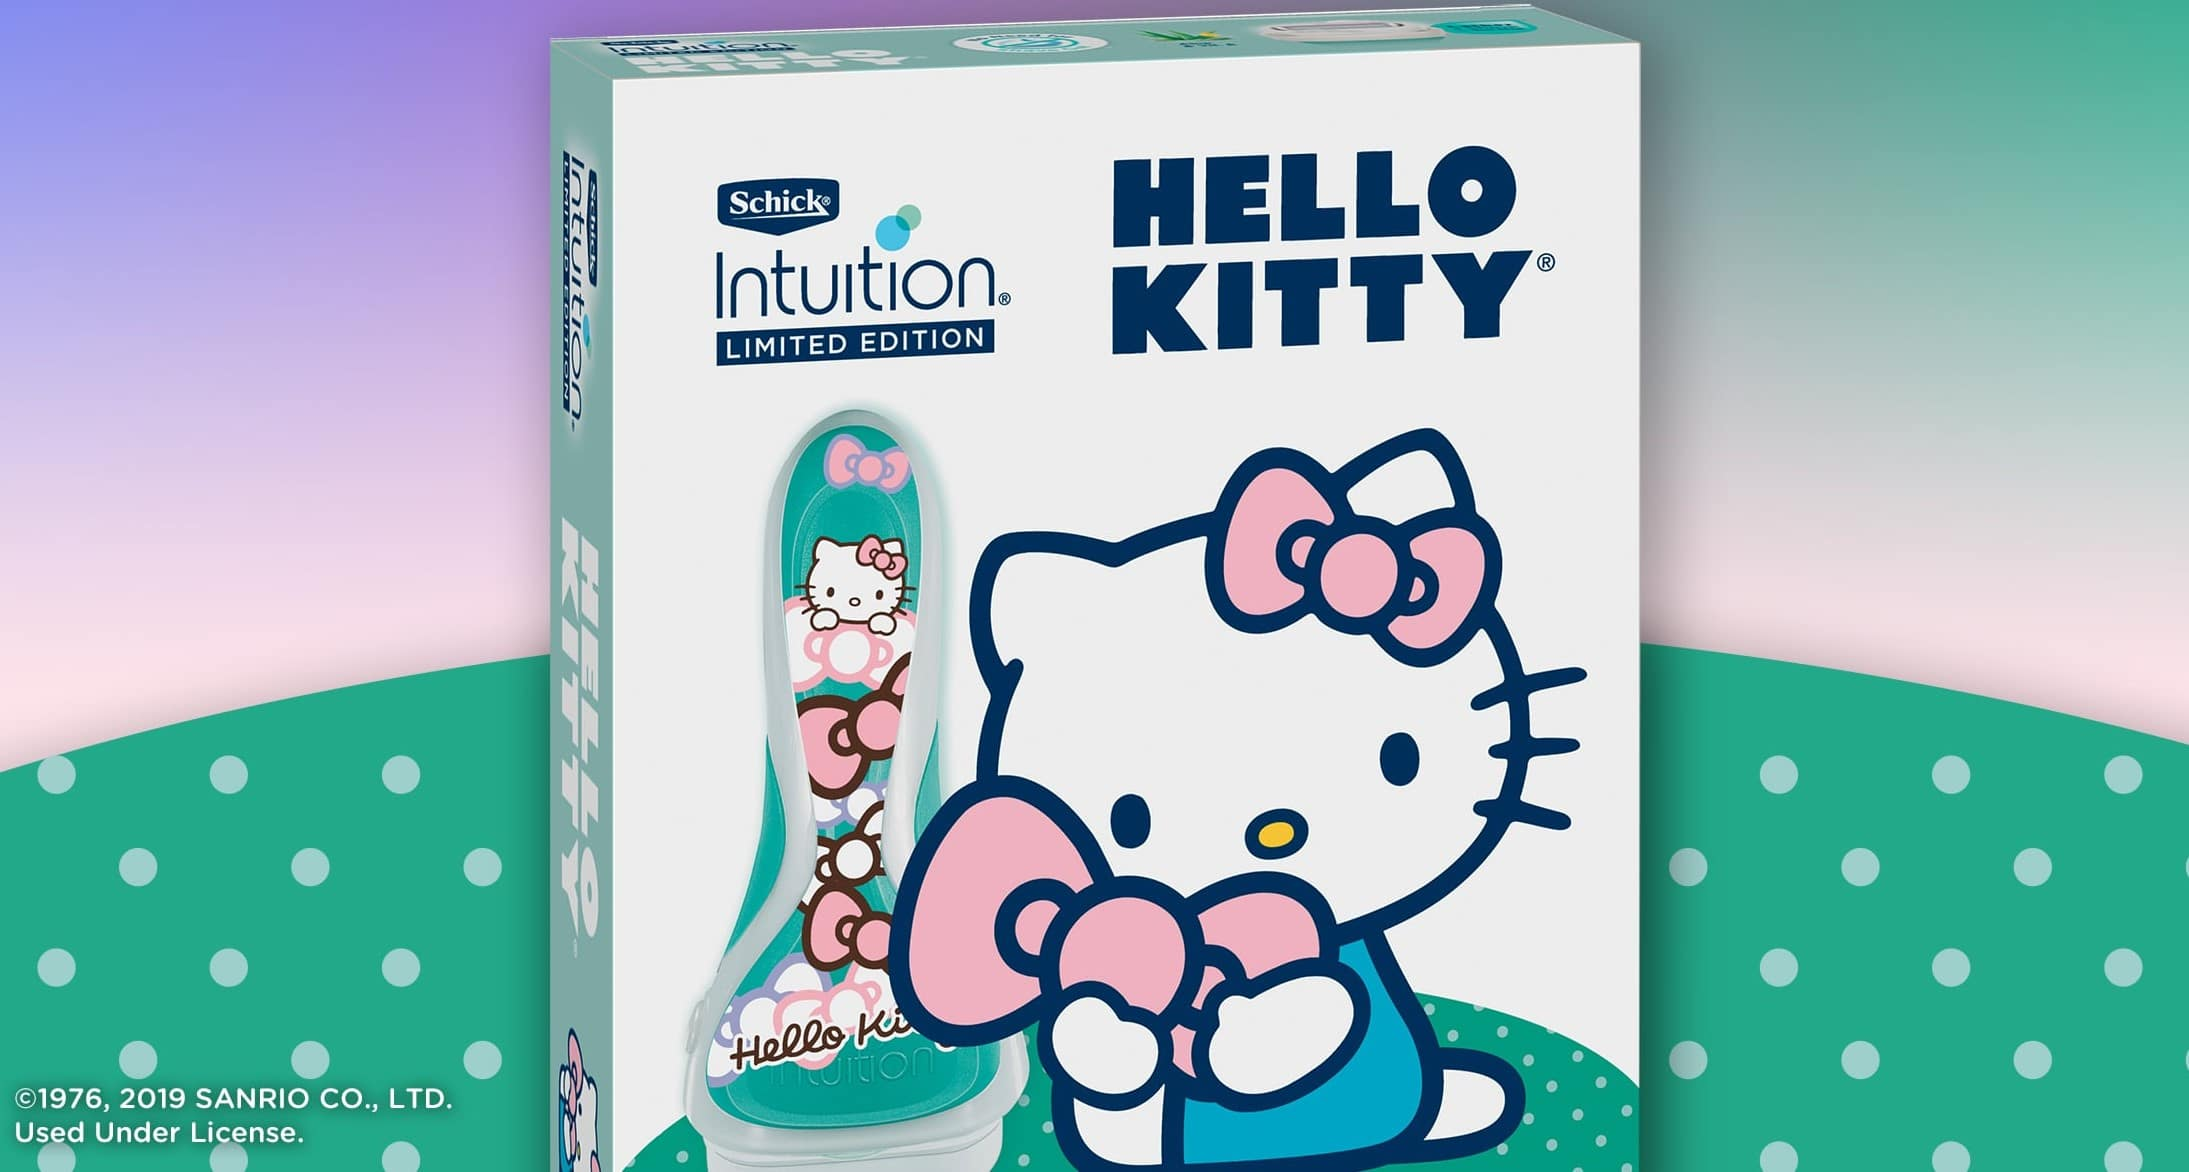 Schick Intuition reteams with Hello Kitty for two new limited-edition razors 15